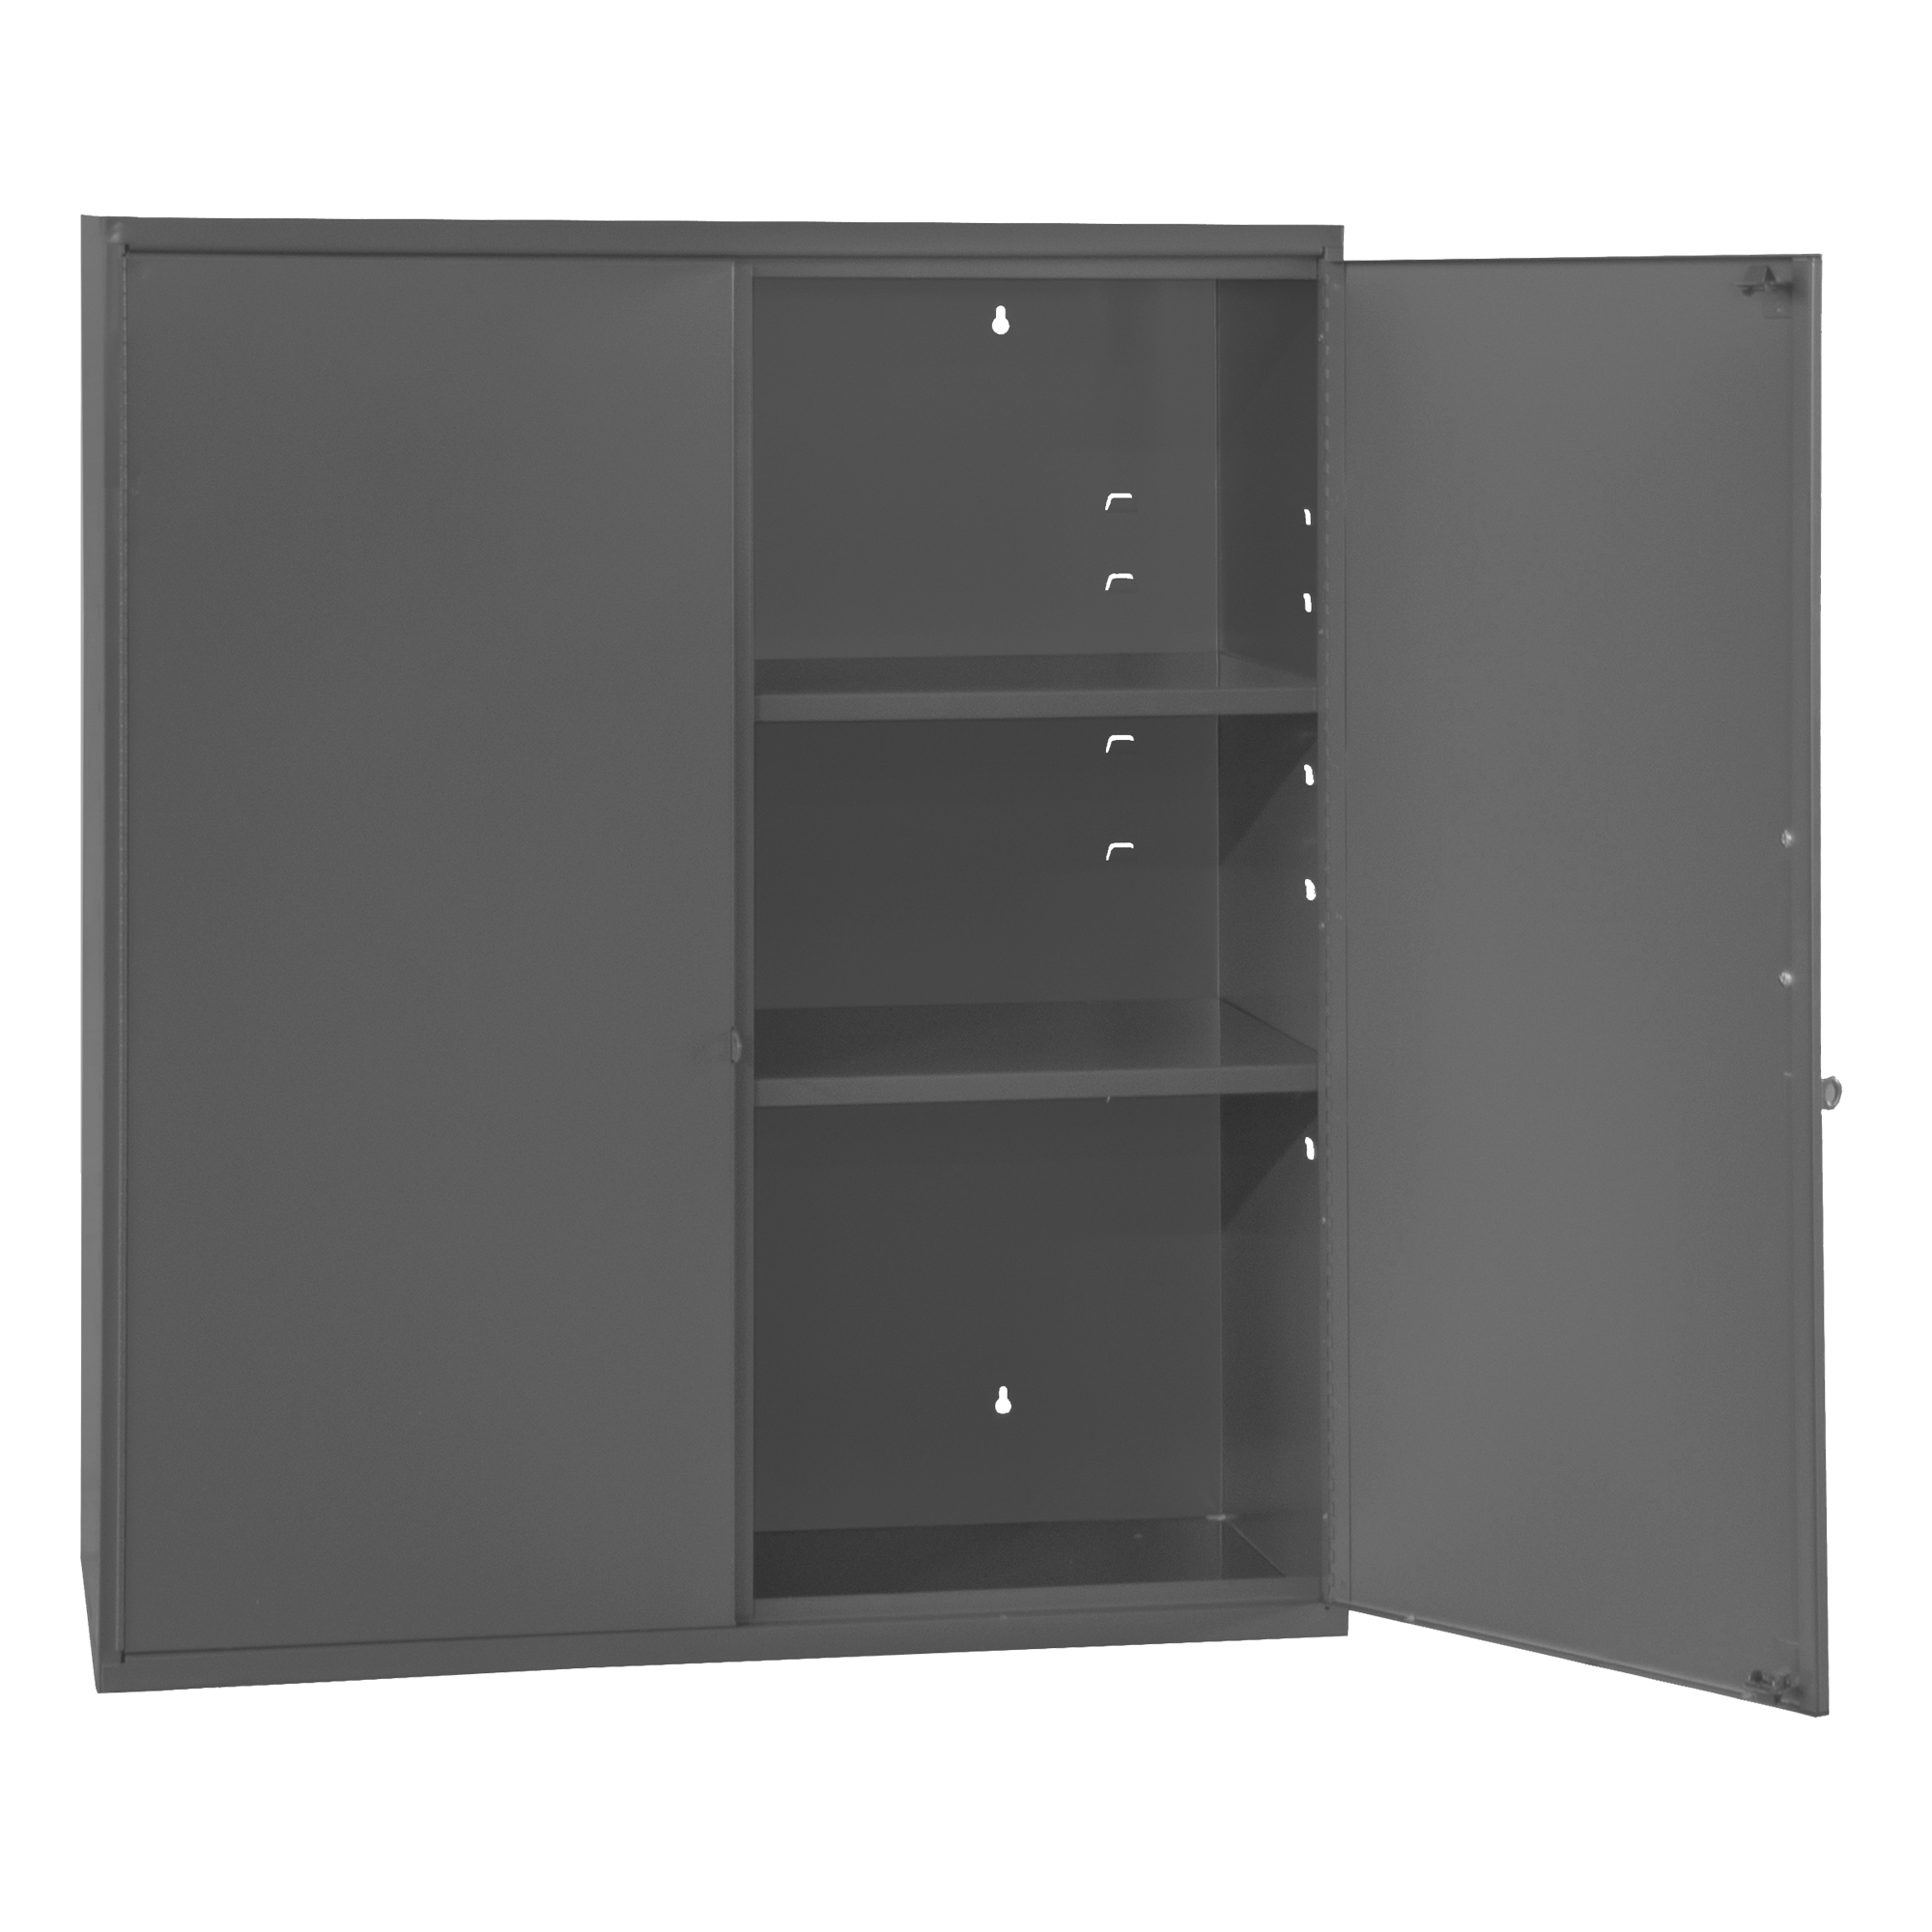 Wall Mounted Storage Cabinet, 3 Shelves, 26-5/8 X 11-7/8 X